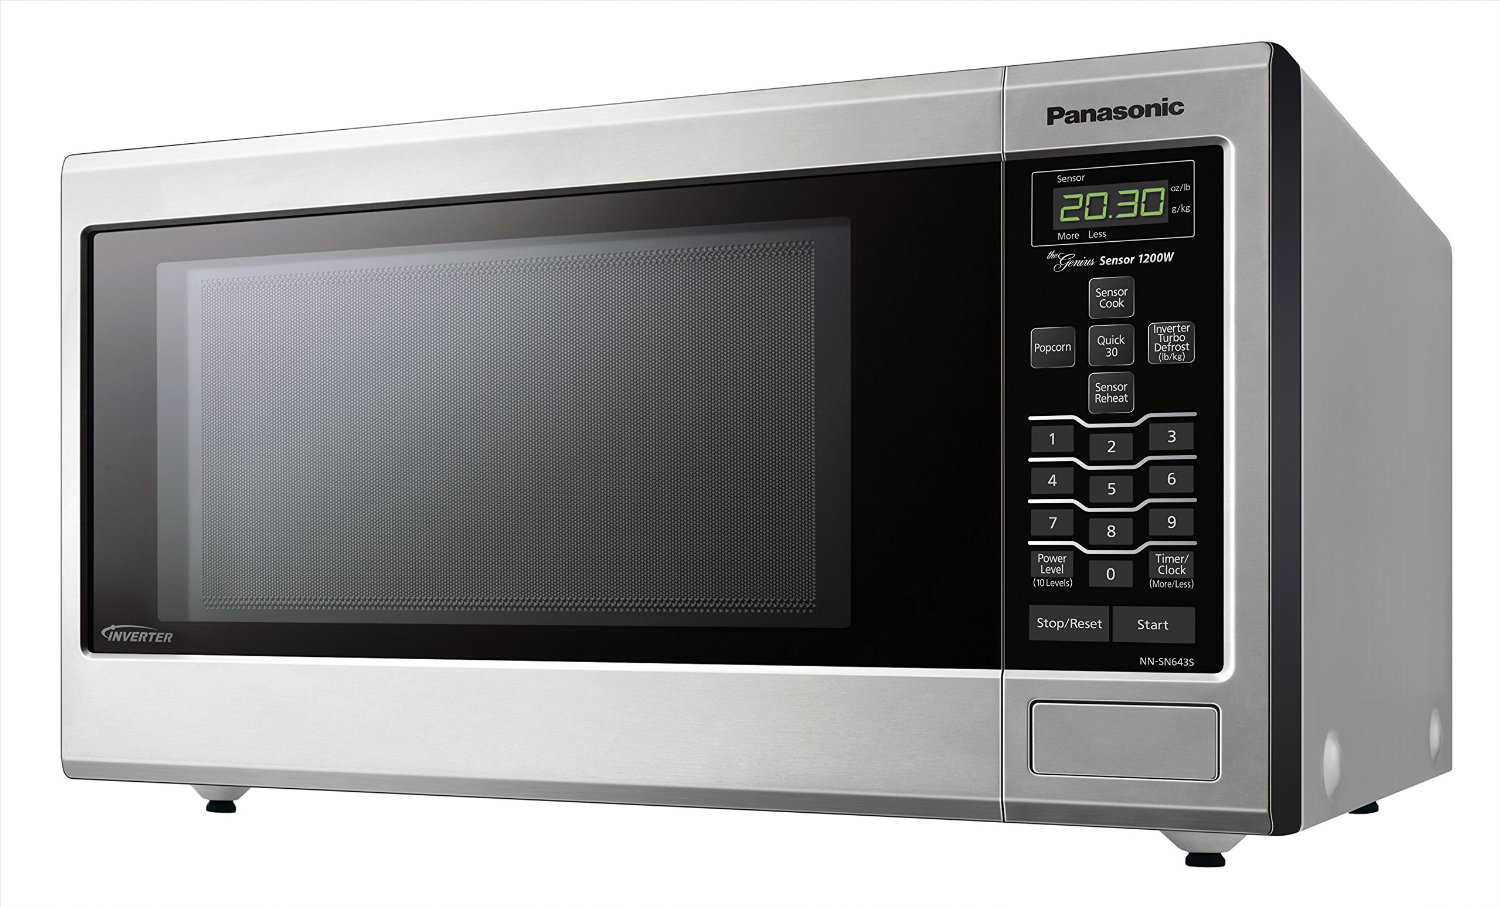 Panasonic Inverter Microwave Price Baked Potato